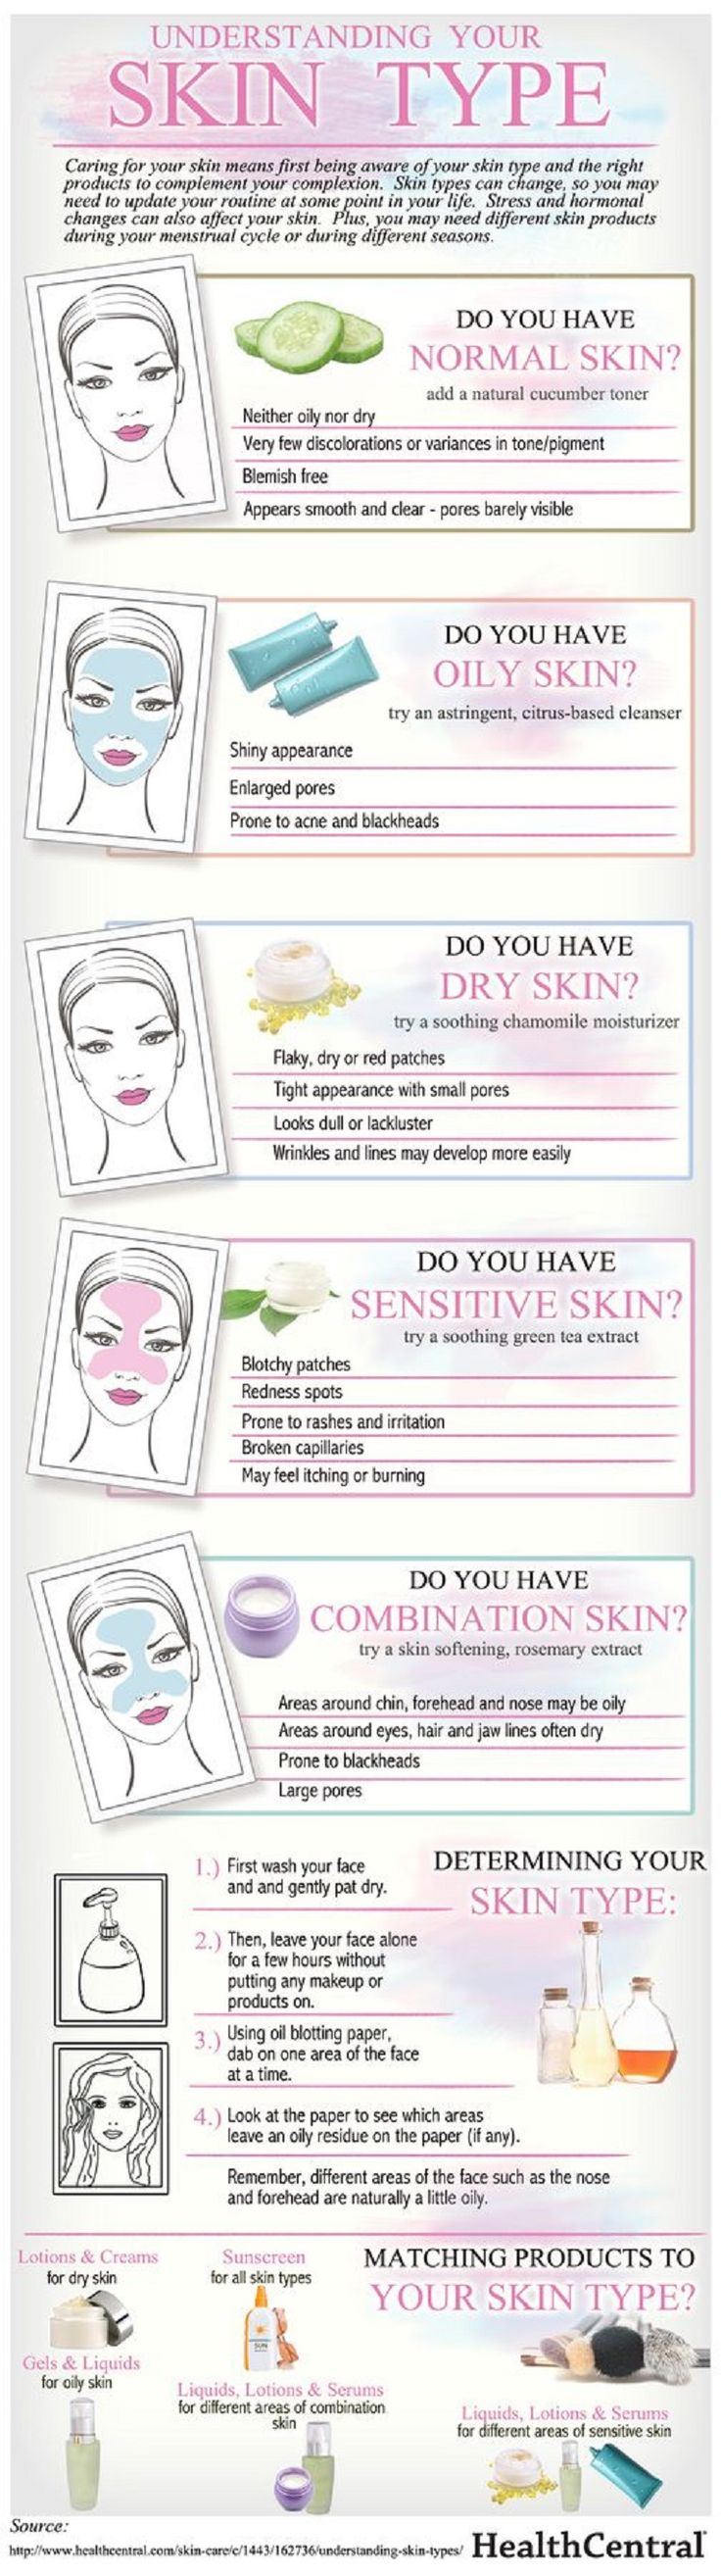 Pick Products Wisely - 10 Best Tips to Minimize Pores Immediately | GleamItUp